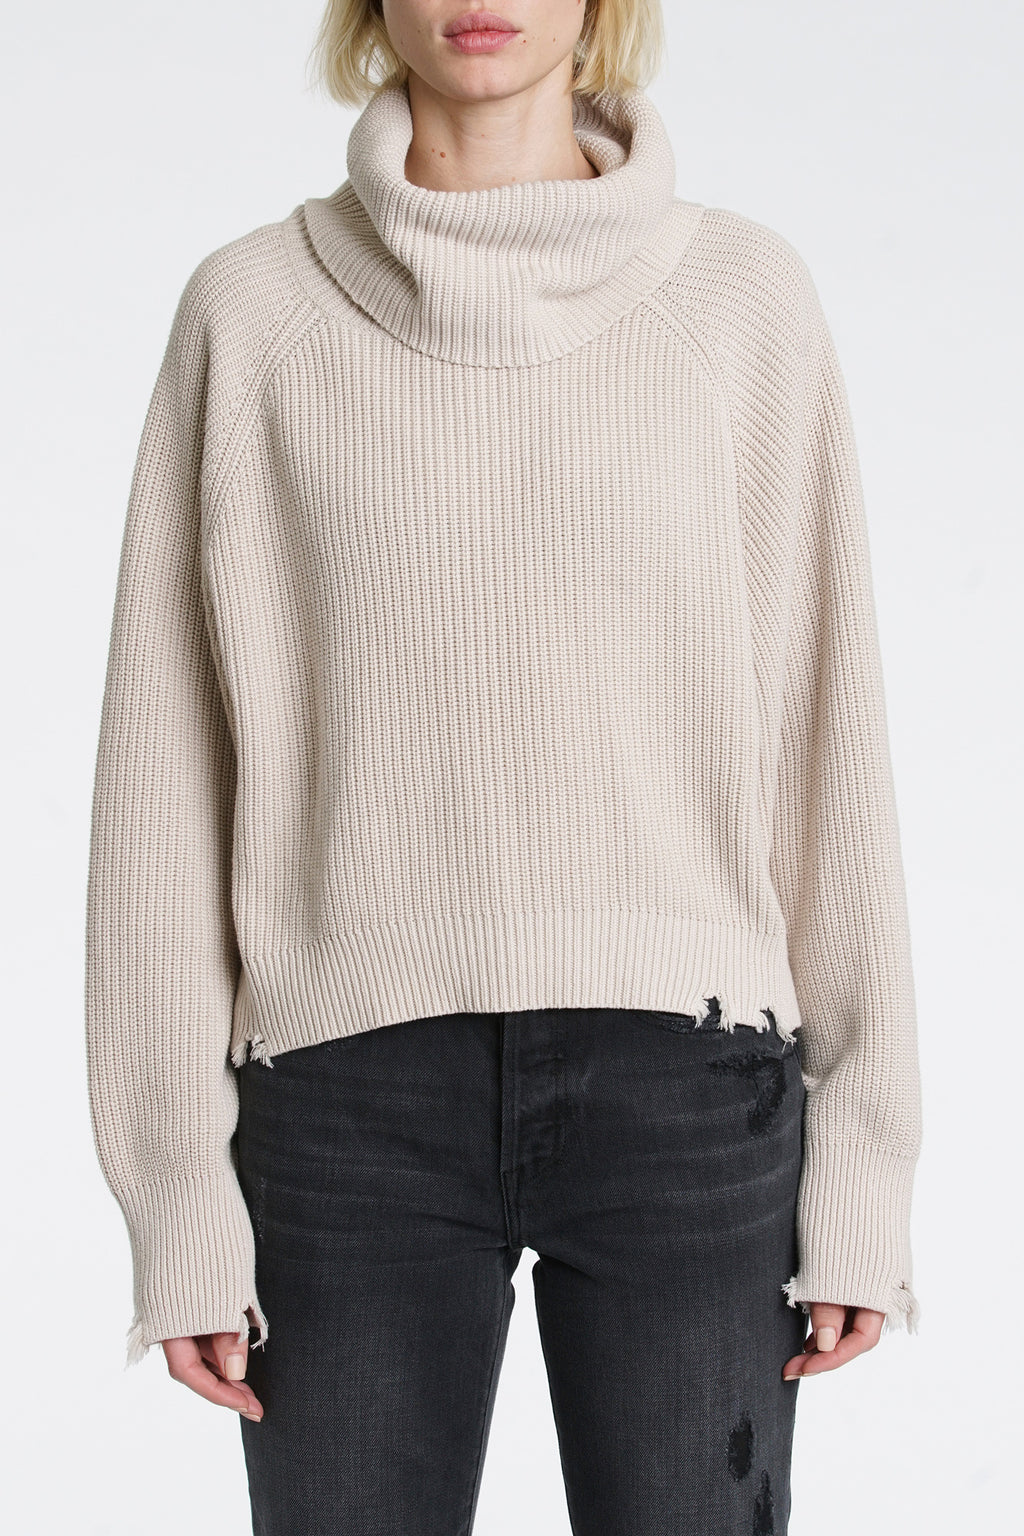 Hadley Turtleneck Sweater - Dove